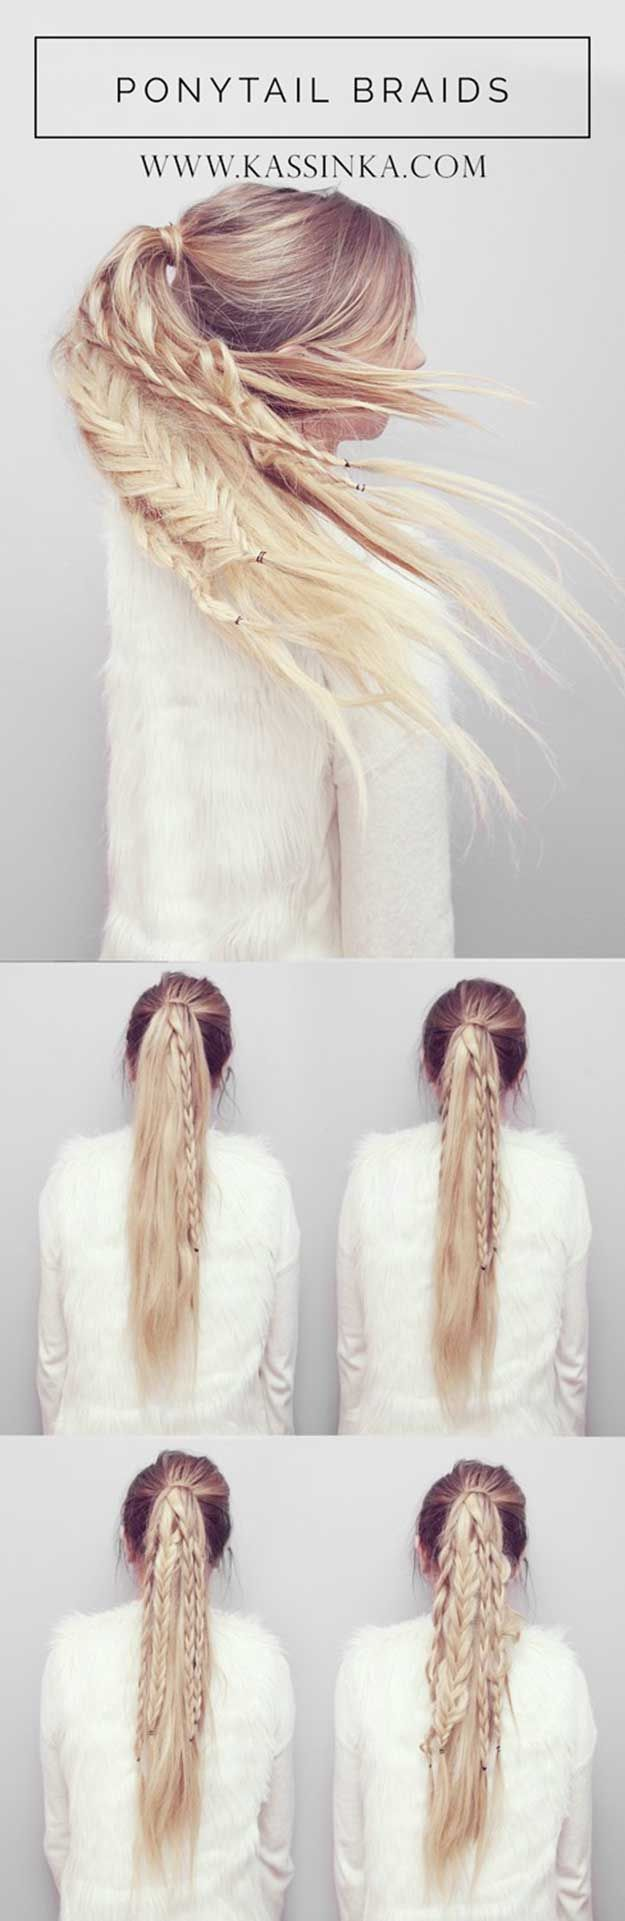 Best hairstyles for summer straight ponytail braids tutorial